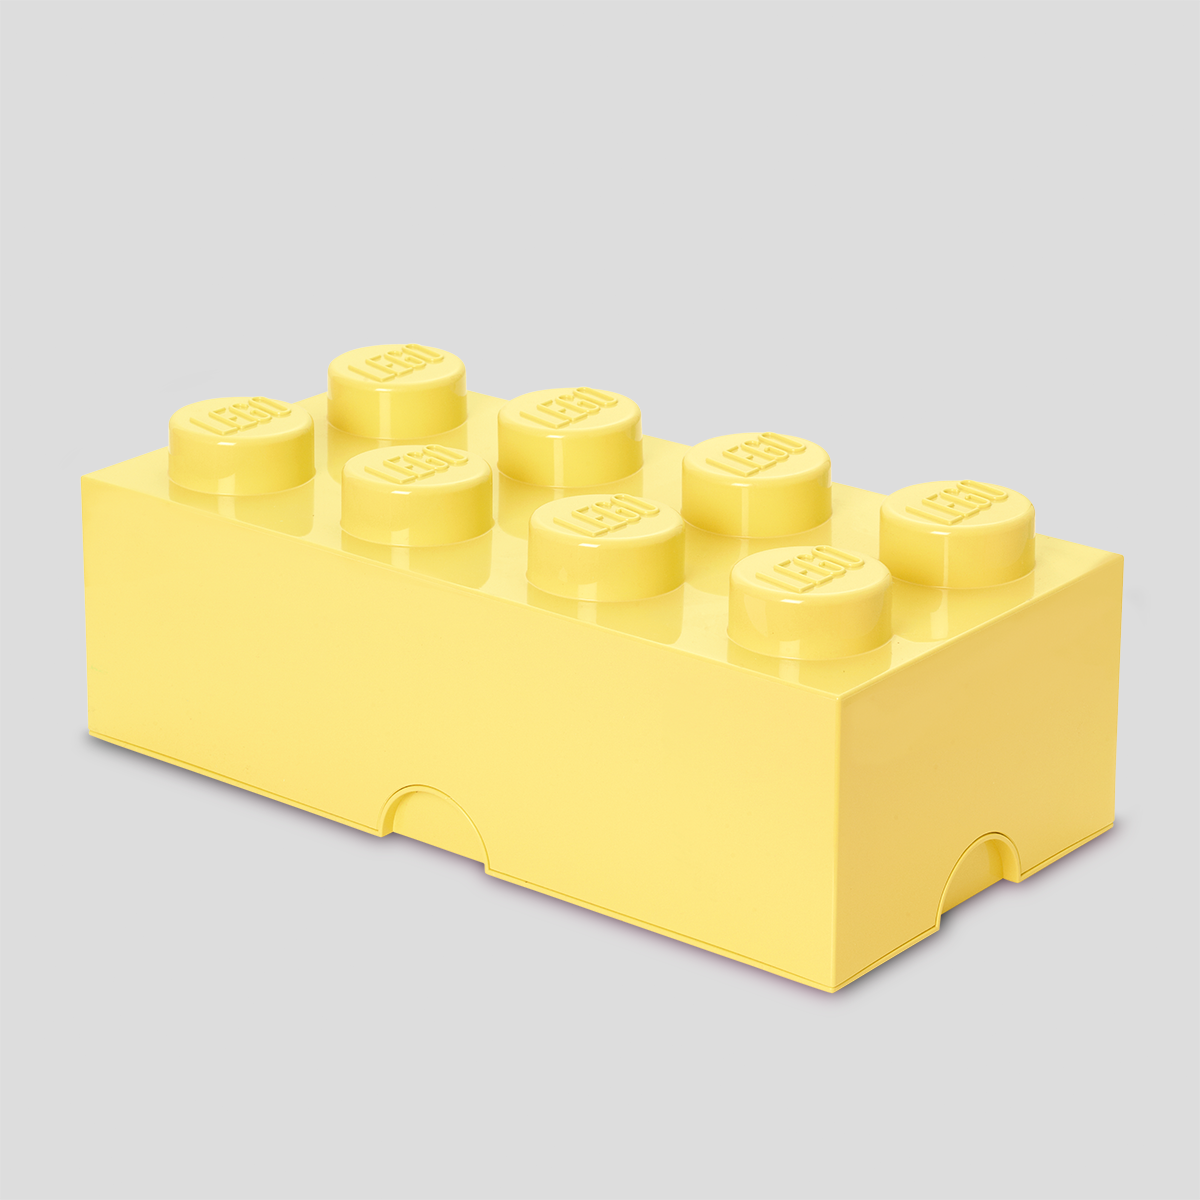 LEGO # 4004 BRICK STORAGE 8 KNOBS - COOL YELLOW